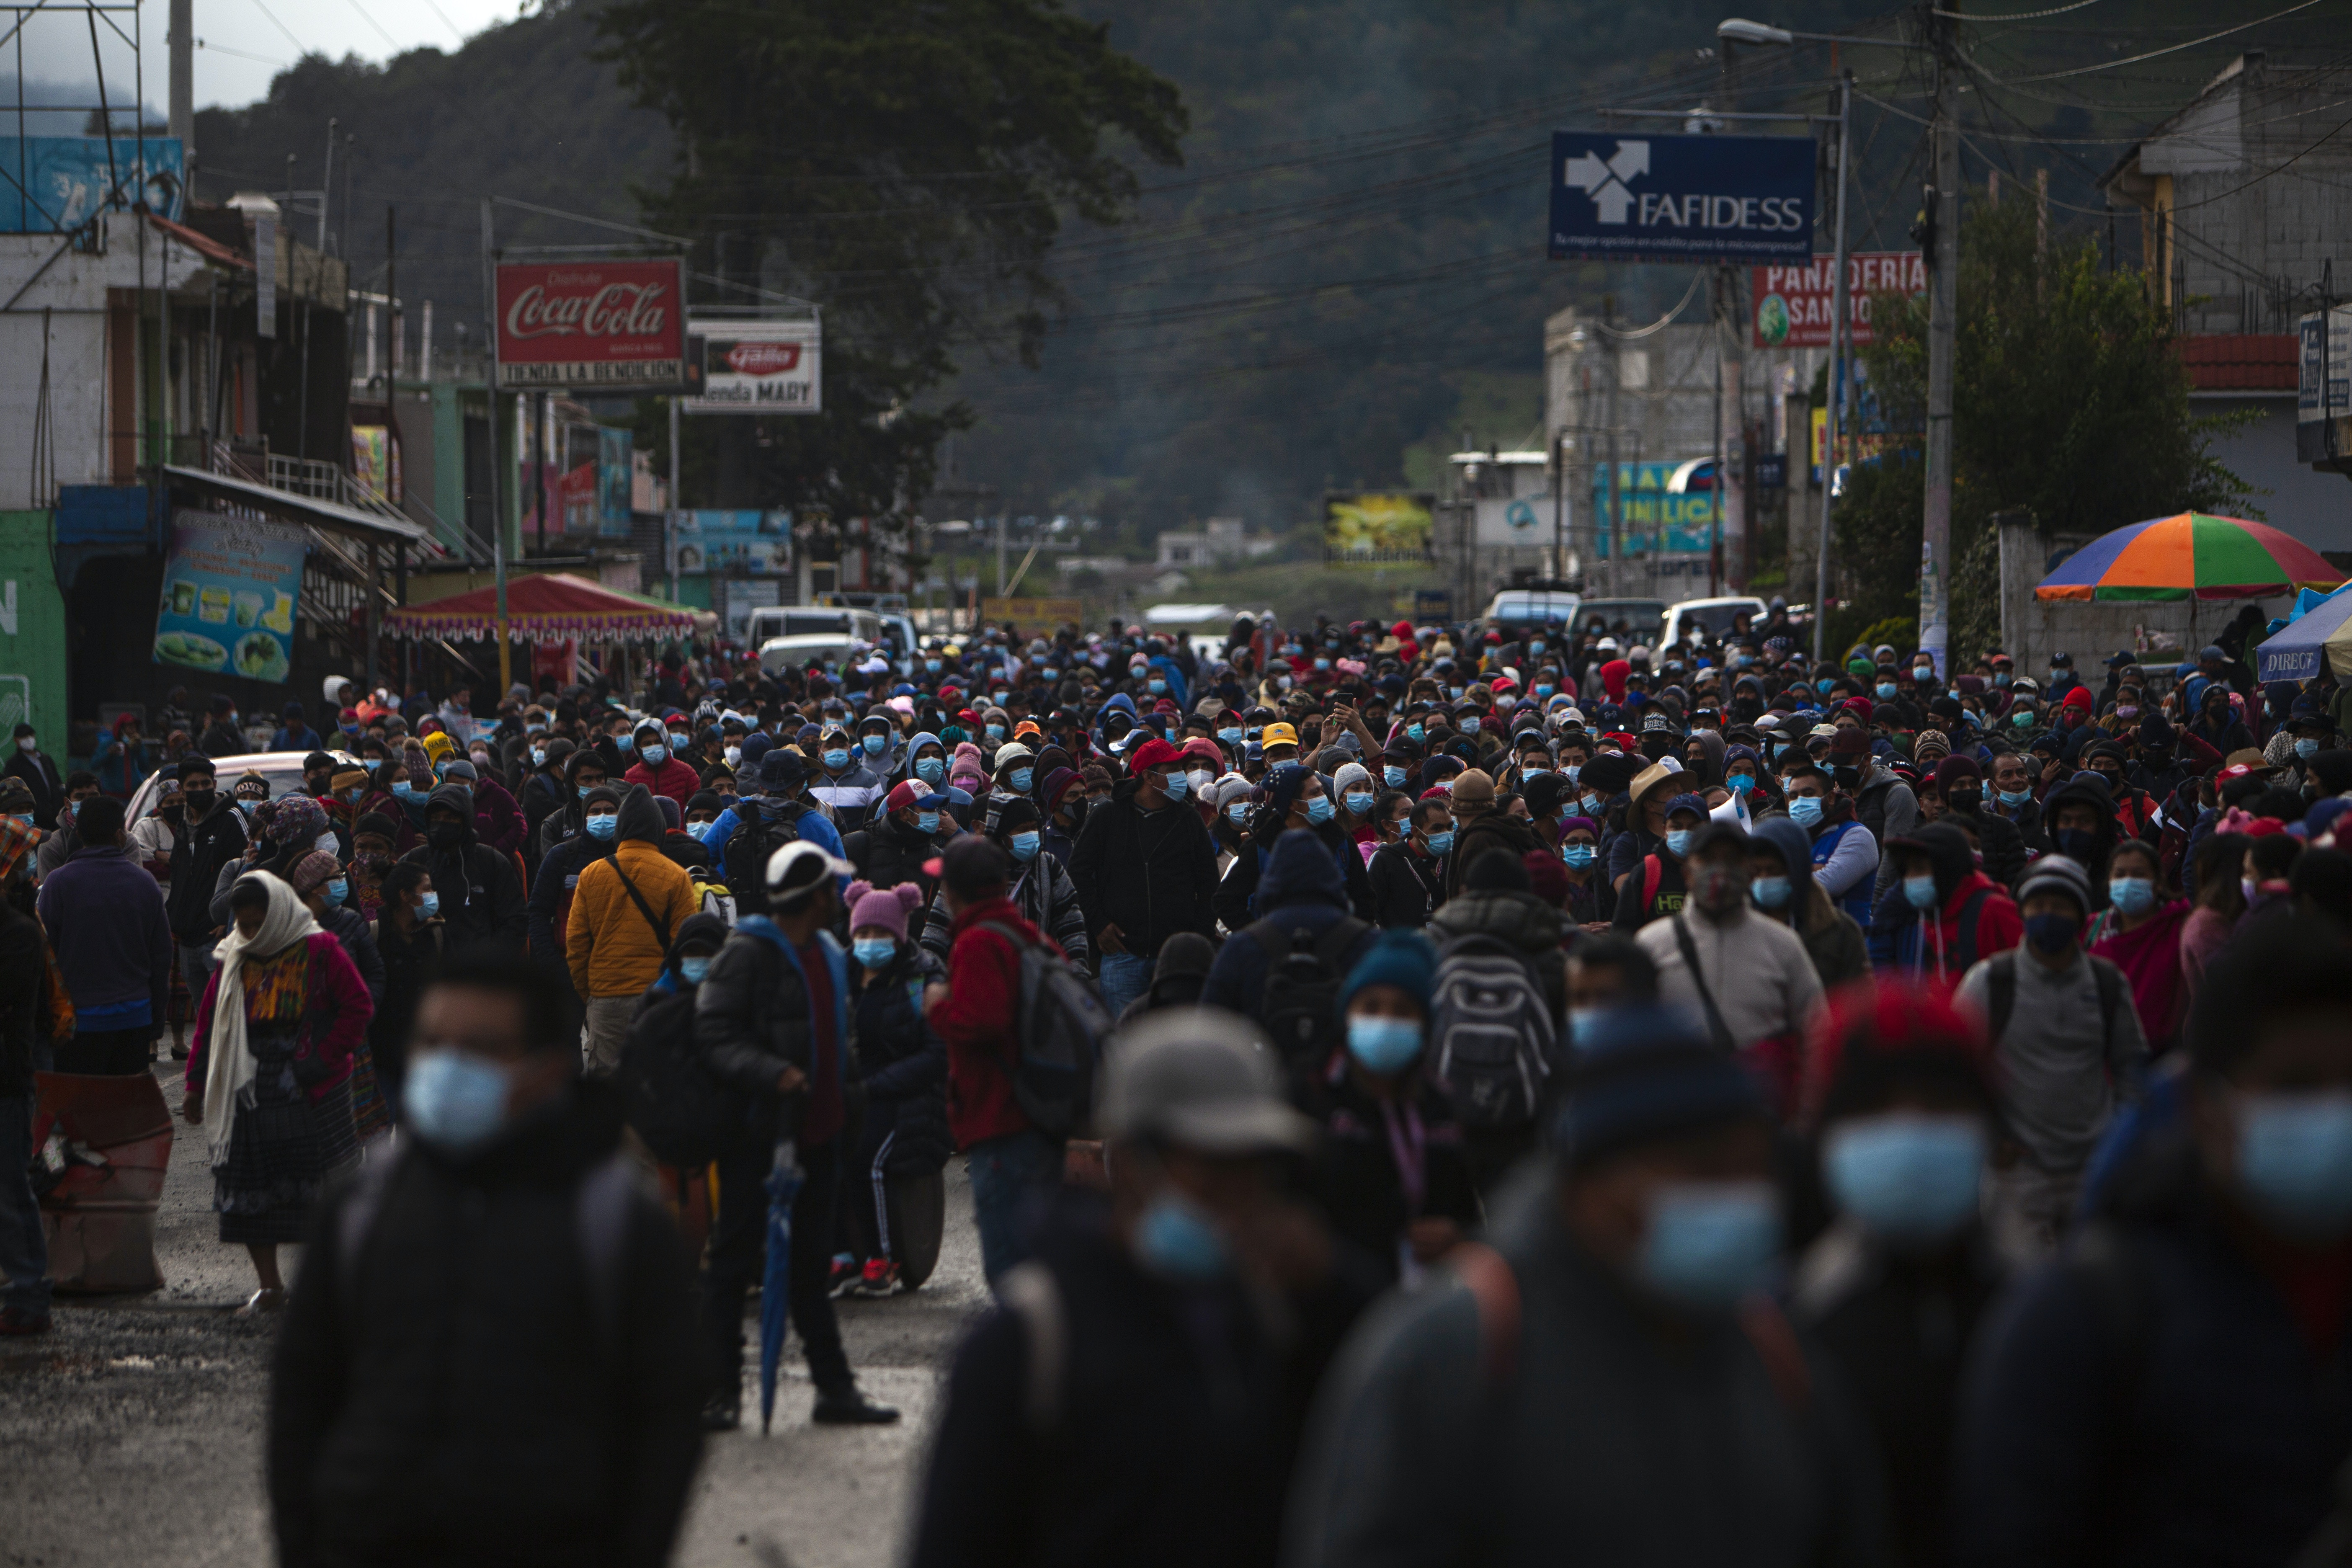 TONONICAPAN, GUATEMALA - JULY 29: Authorities of the 48 indigenous cantons of Totonicapan block a road at the height of Cuatro Caminos in the department of Totonicapan on July 29, 2021 where they express their dissatisfaction with the actions of the government and the rejection of the removal of the Chief of the Special Prosecutor's Office against corruption and impunity (Photo by Luis Vargas/Anadolu Agency via Getty Images)